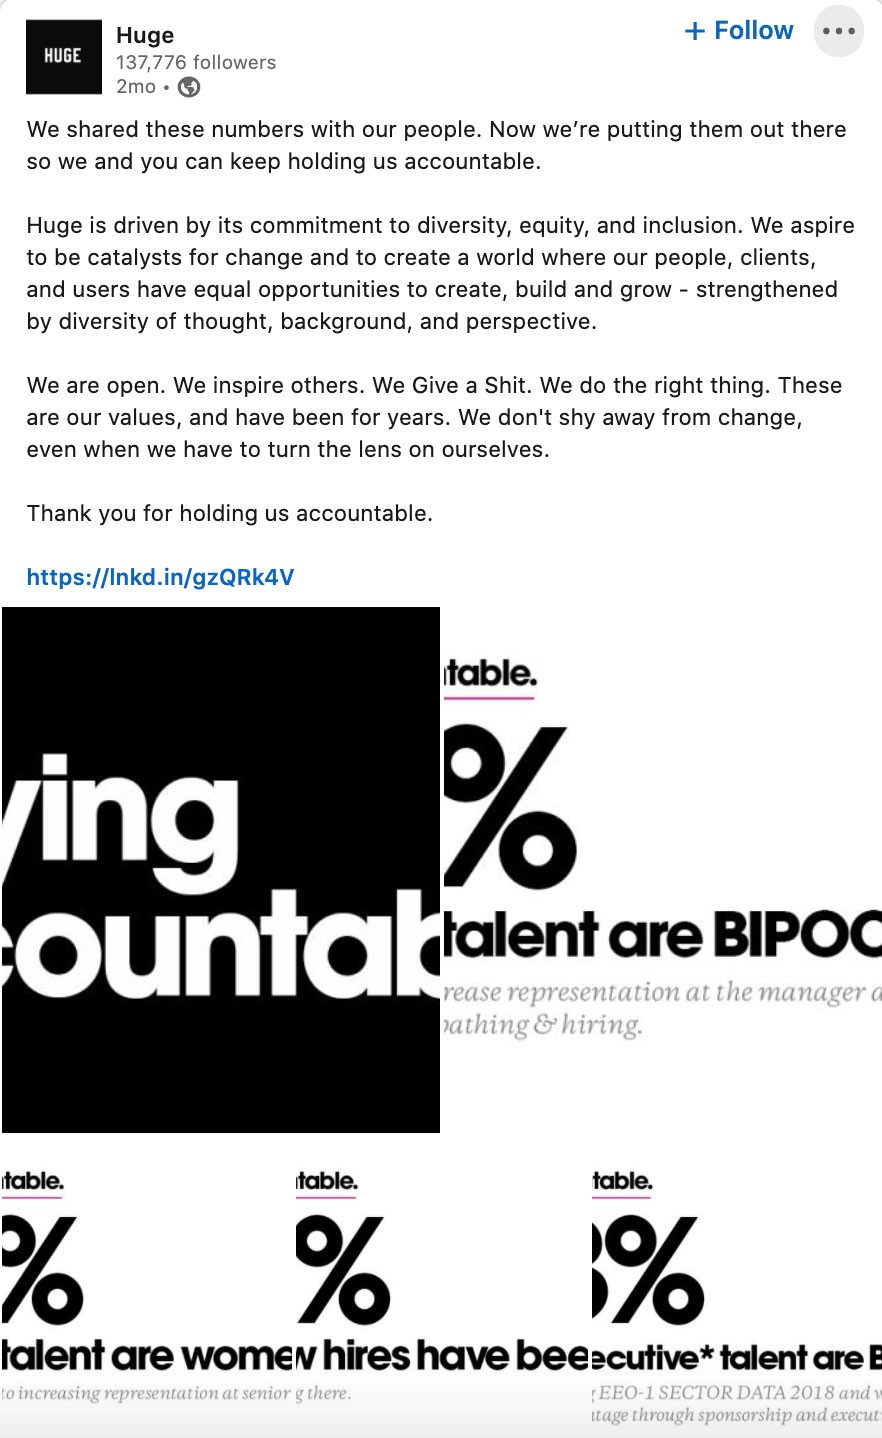 We shared these numbers with our people. Now we're putting them out there so we and you can keep holding us accountable.  Huge is driven by its commitment to diversity, equity, and inclusion. We aspire to be catalysts for change and to create a world where our people, clients, and users have equal opportunities to create, build and grow - strengthened by diversity of thought, background, and perspective.  We are open. We inspire others. We Give a Shit. We do the right thing. These are our values, and have been for years. We don't shy away from change, even when we have to turn the lens on ourselves.  Thank you for holding us accountable.